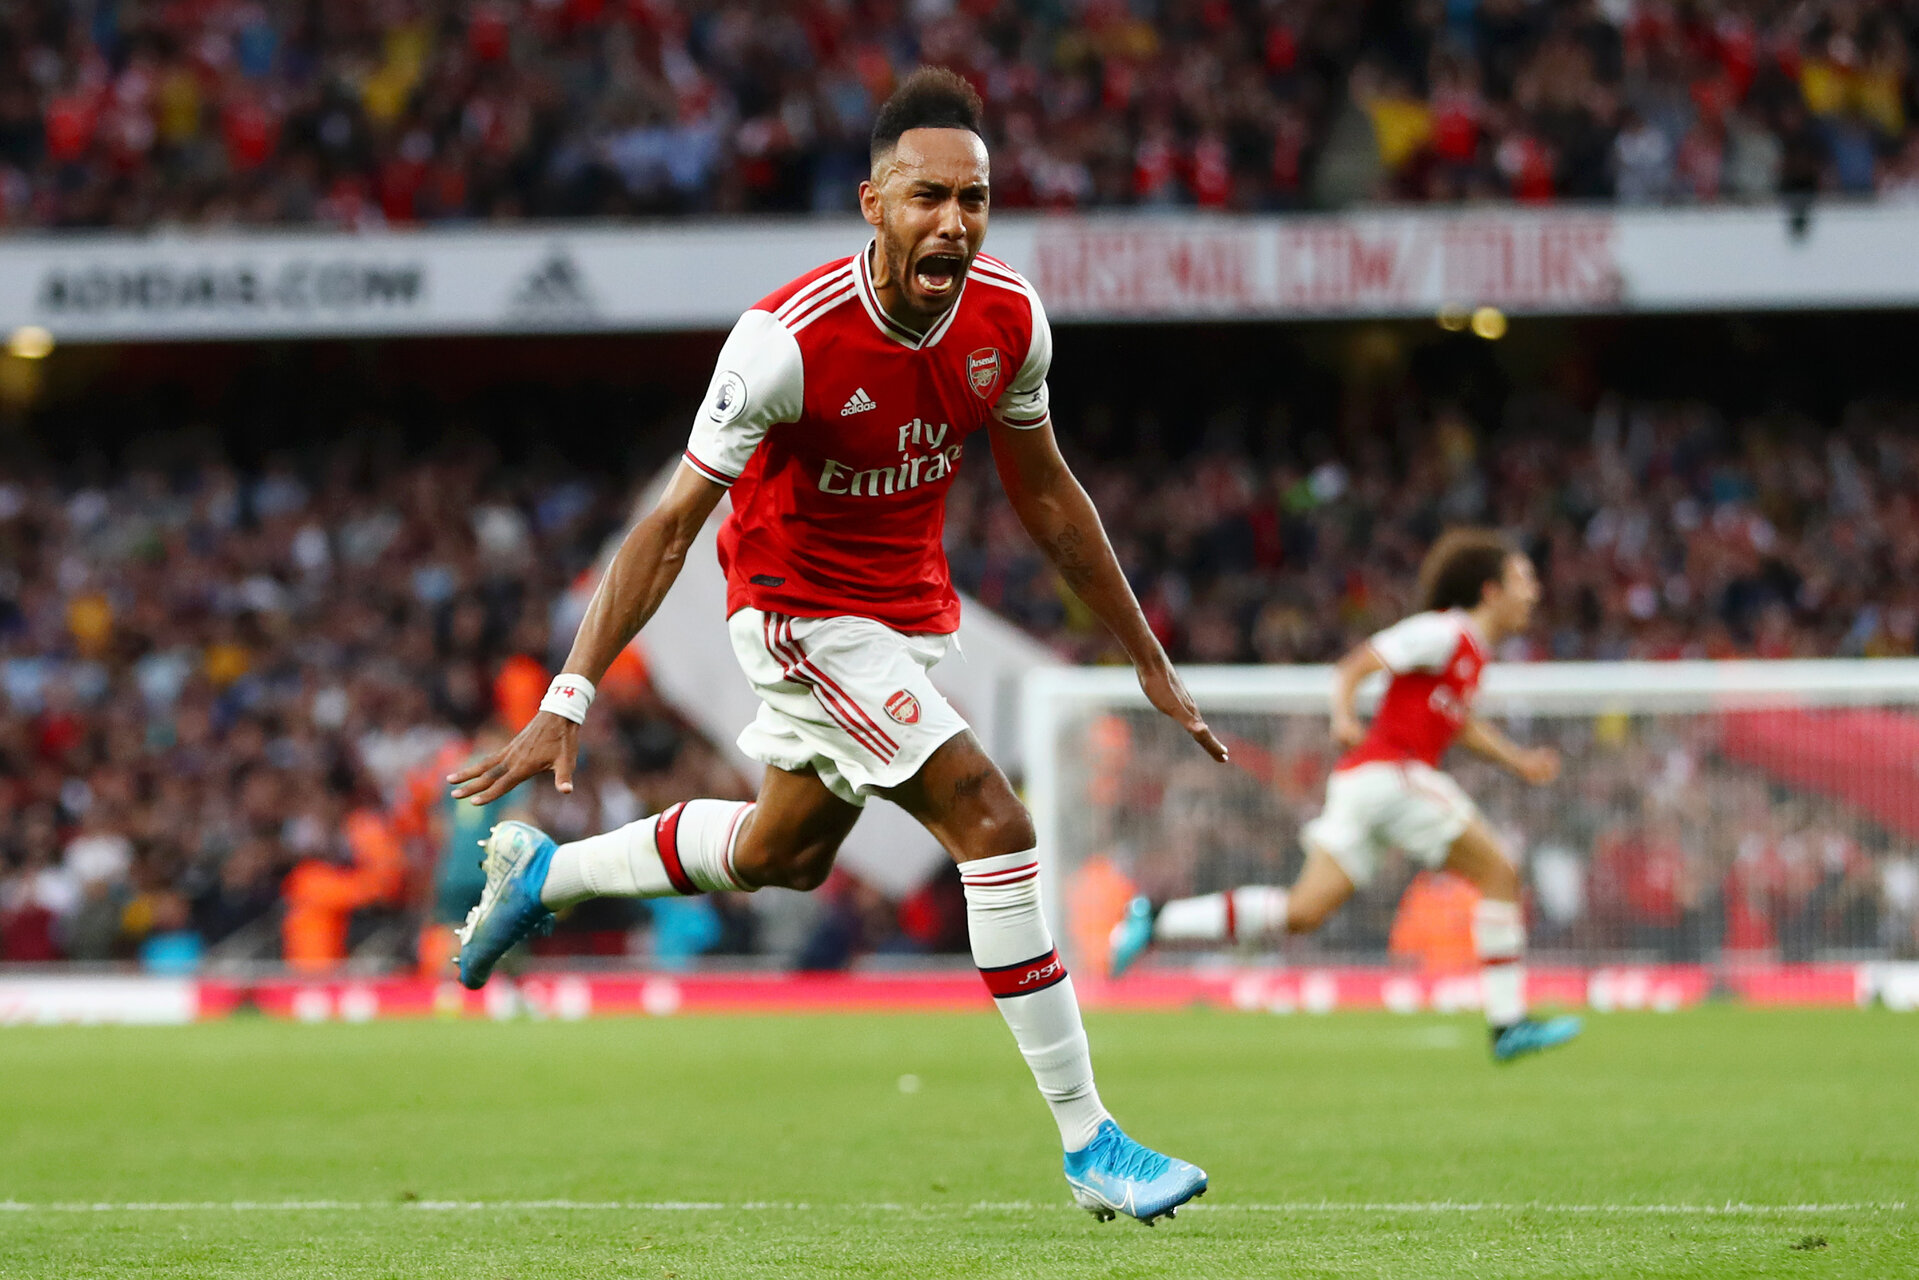 LONDON, ENGLAND - SEPTEMBER 22: Pierre-Emerick Aubameyang of Arsenal celebrates scoring his team's third goal during the Premier League match between Arsenal FC and Aston Villa at Emirates Stadium on September 22, 2019 in London, United Kingdom. (Photo by Michael Steele/Getty Images)